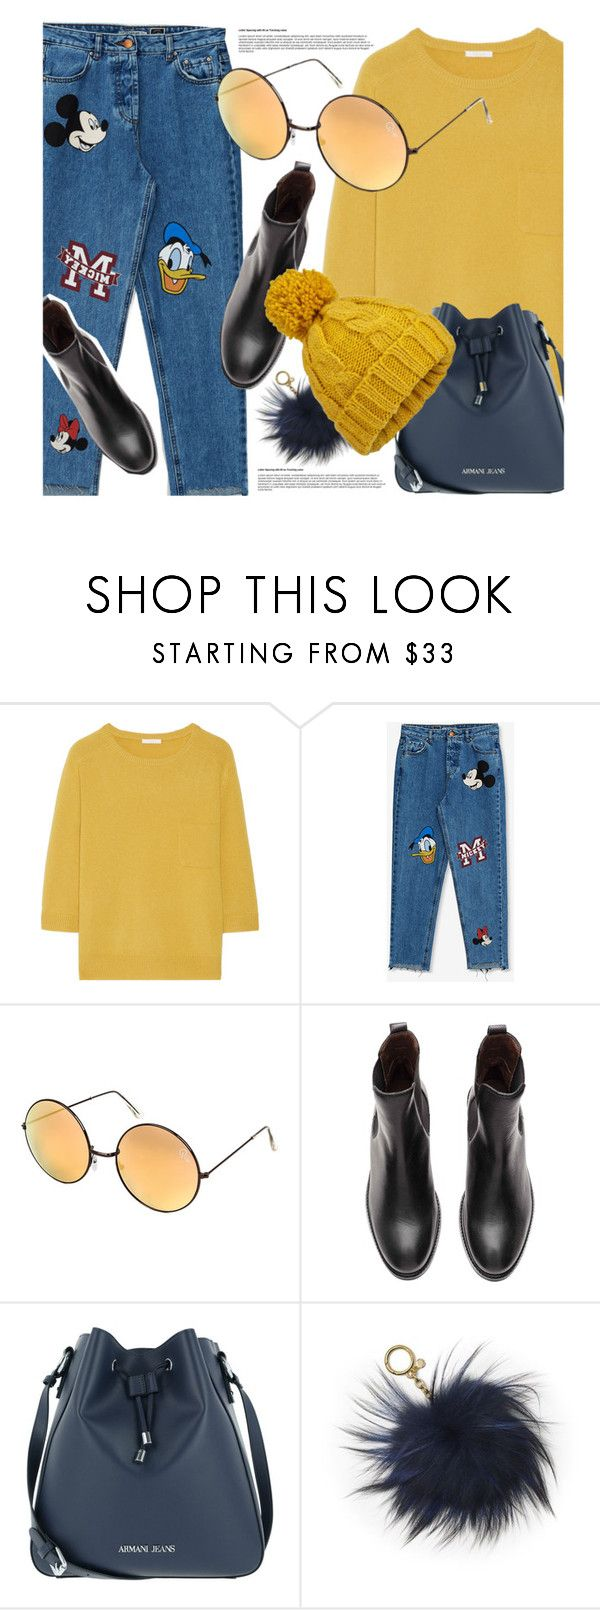 """""""Hey, Mickey"""" by smartbuyglasses-uk ❤ liked on Polyvore featuring Chloé, Pull&Bear, Quay, Armani Jeans, MICHAEL Michael Kors, Miss Selfridge and yellow"""